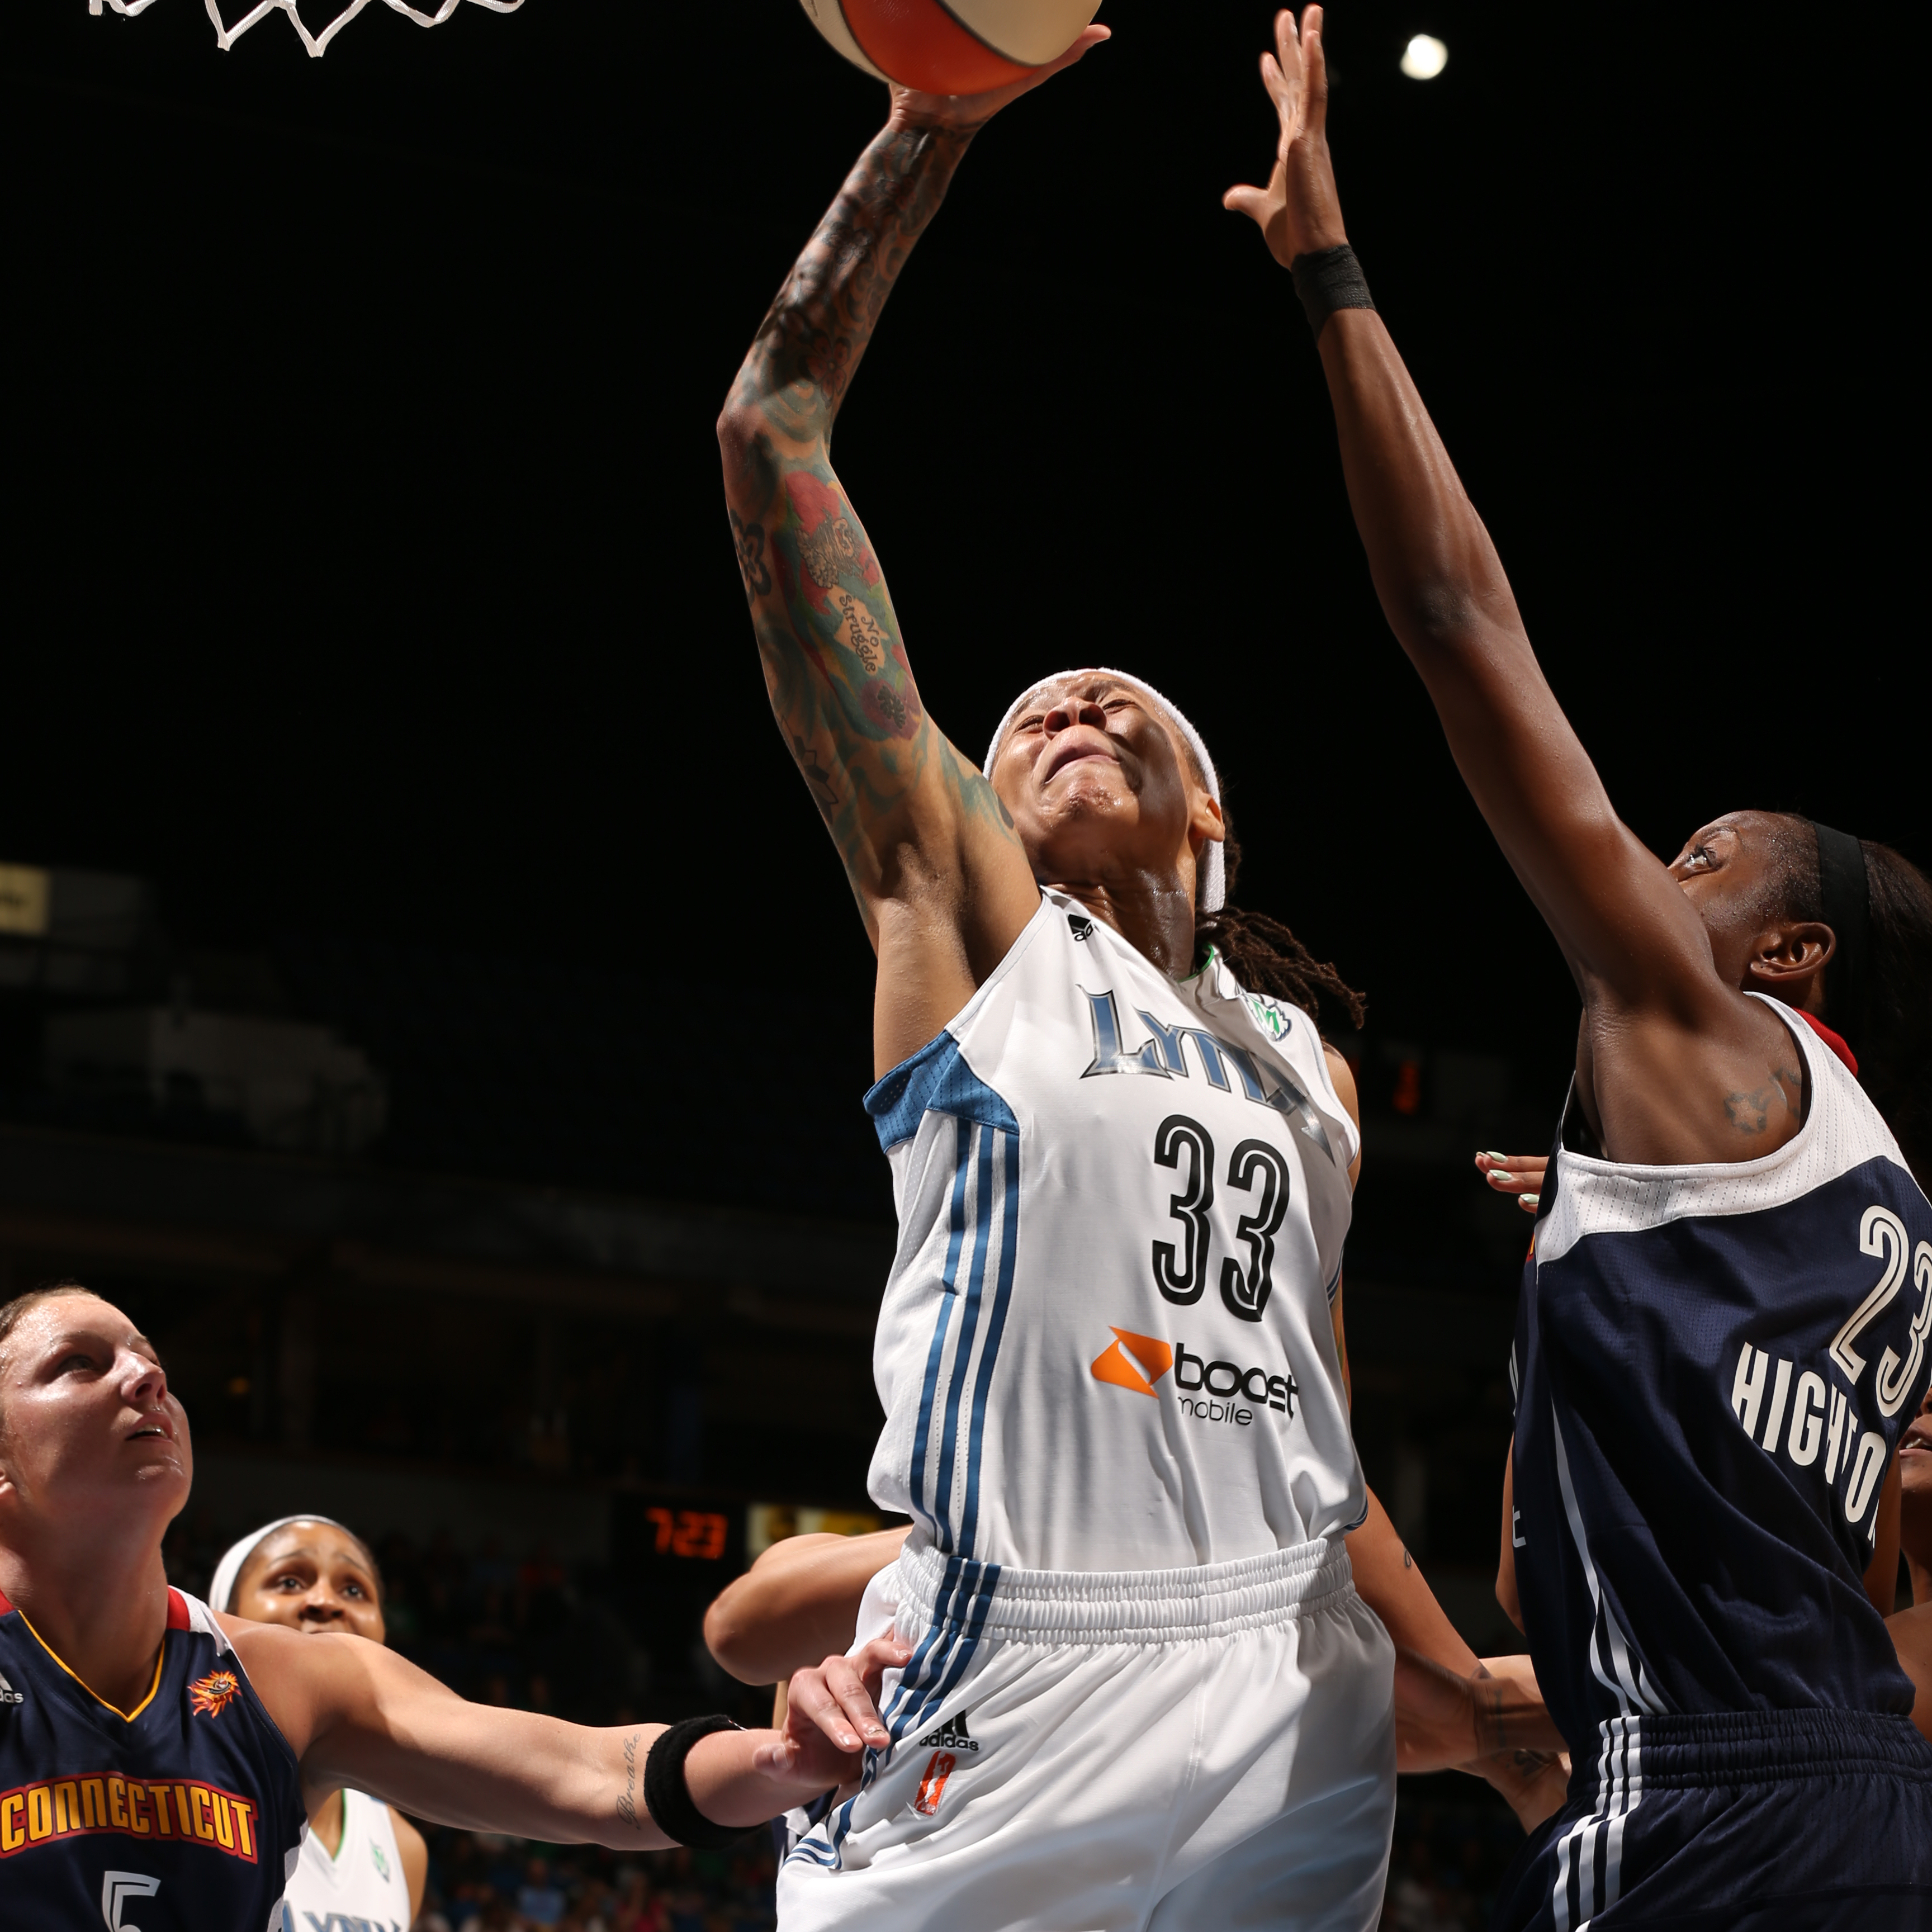 2013's Home-Opener: Lynx guard Seimone Augustus helped lead the Lynx to victory over the Sun, scoring 20 points while grabbing four rebounds, dishing out four assists and snagging one steal.